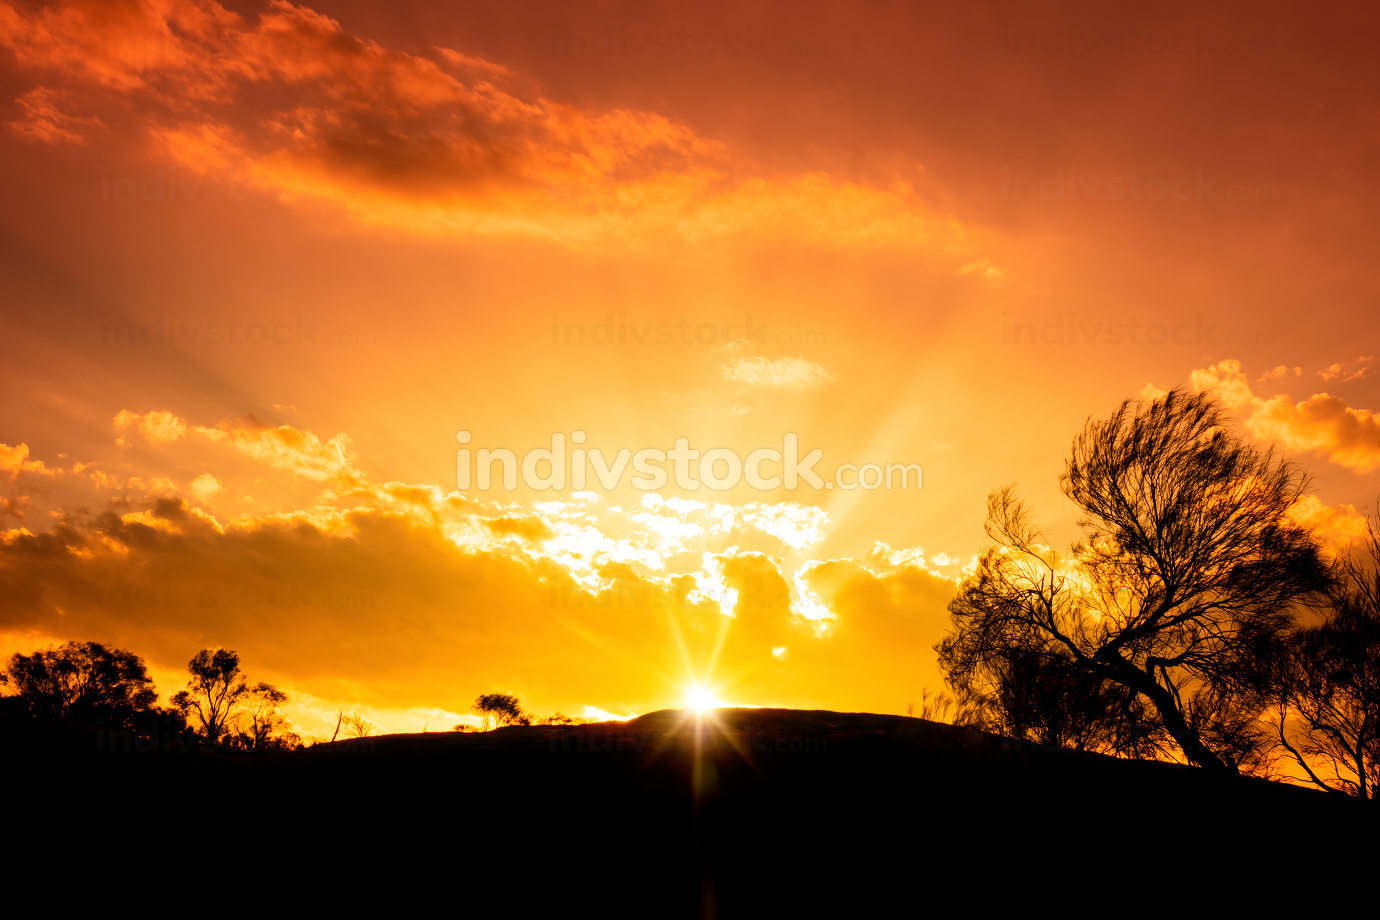 beautiful sunset in the Australia outback